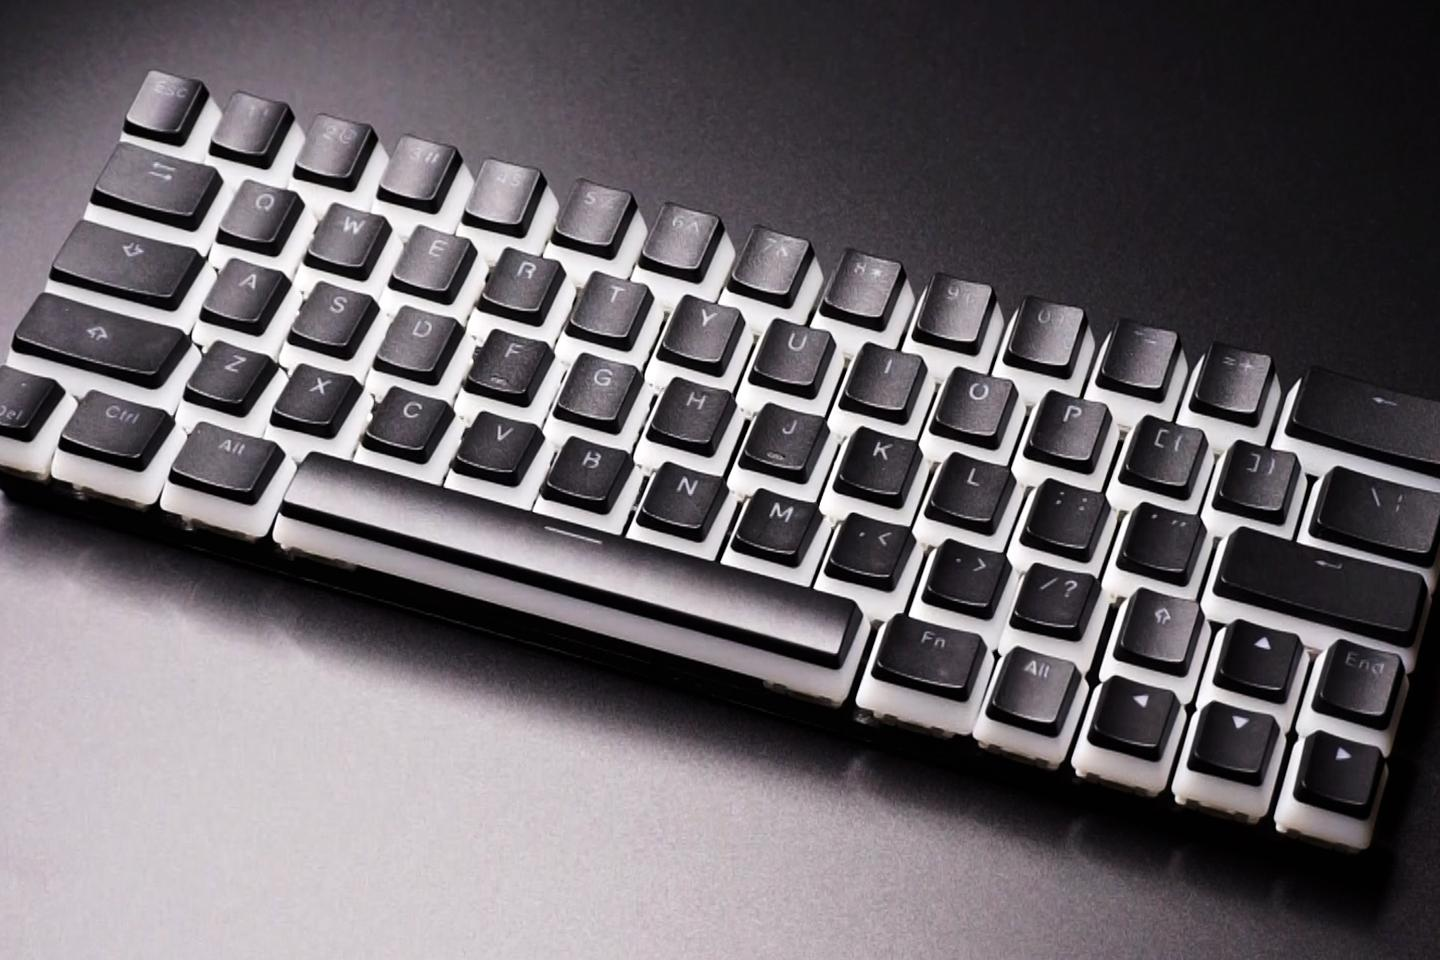 The CharaChorder Lite keyboard is presently on Kickstarter